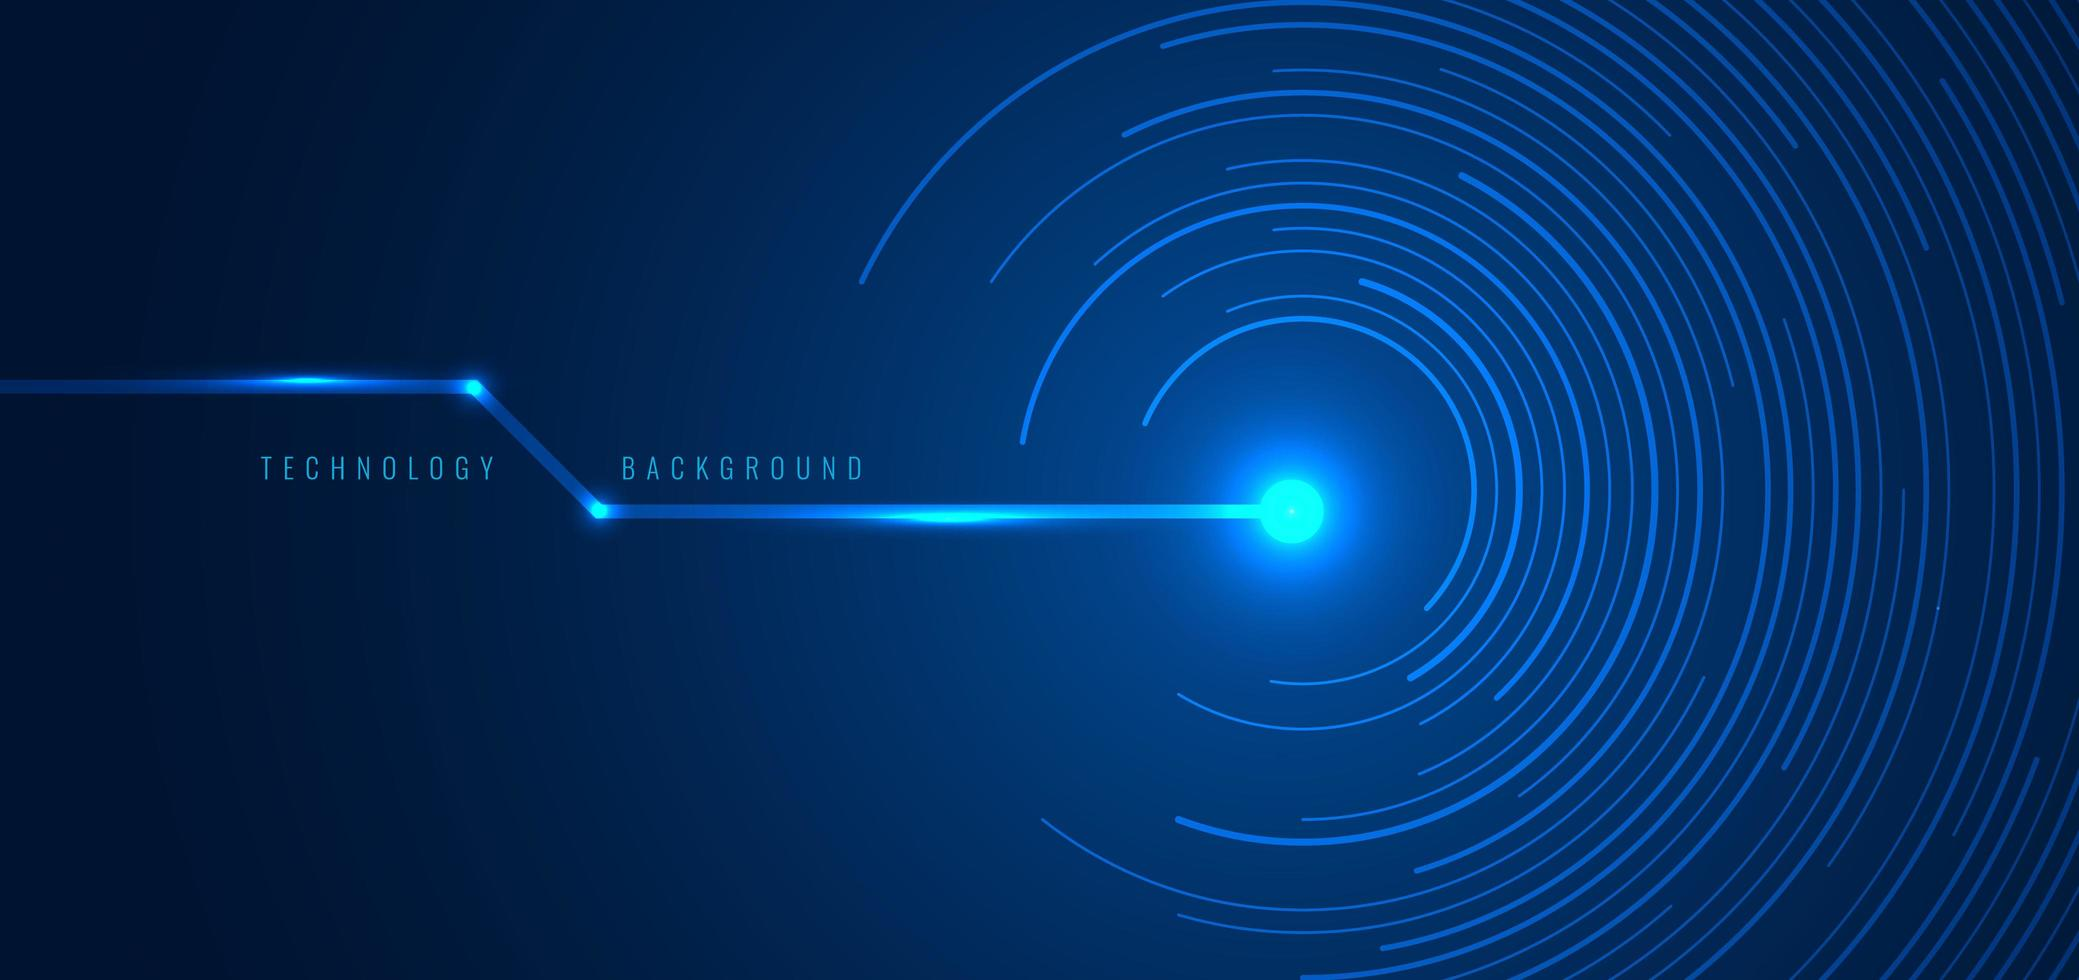 Abstract Technology Futuristic Concept Blue Circular Lines vector